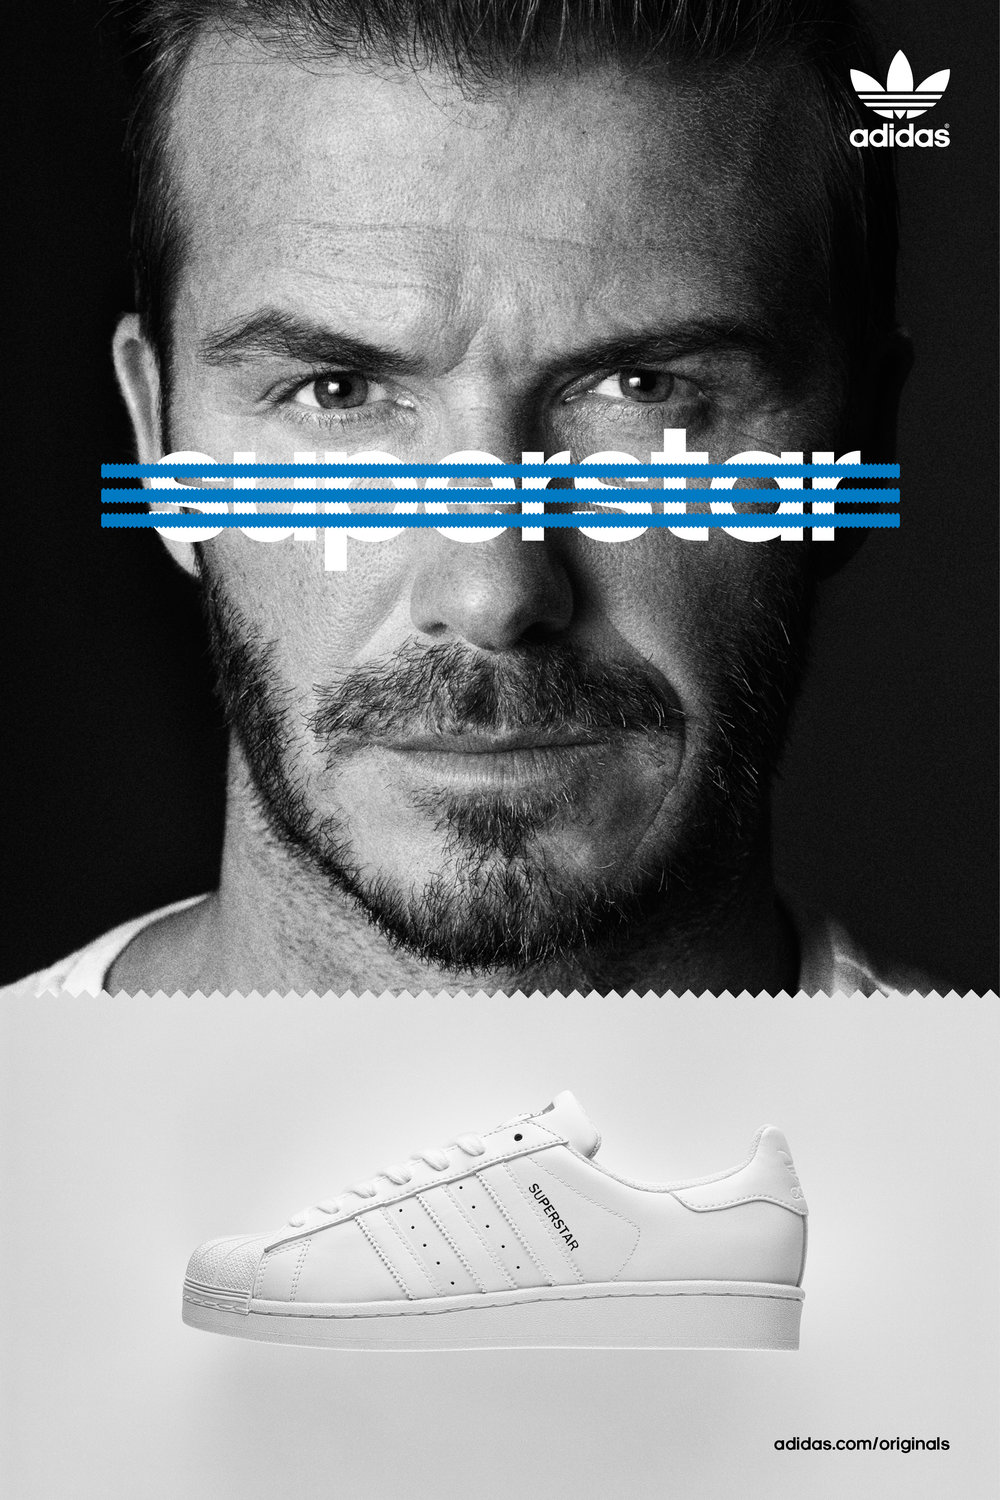 Adidas-Superstar-Layout-Portrait-Product-DB-6S_2260.jpg